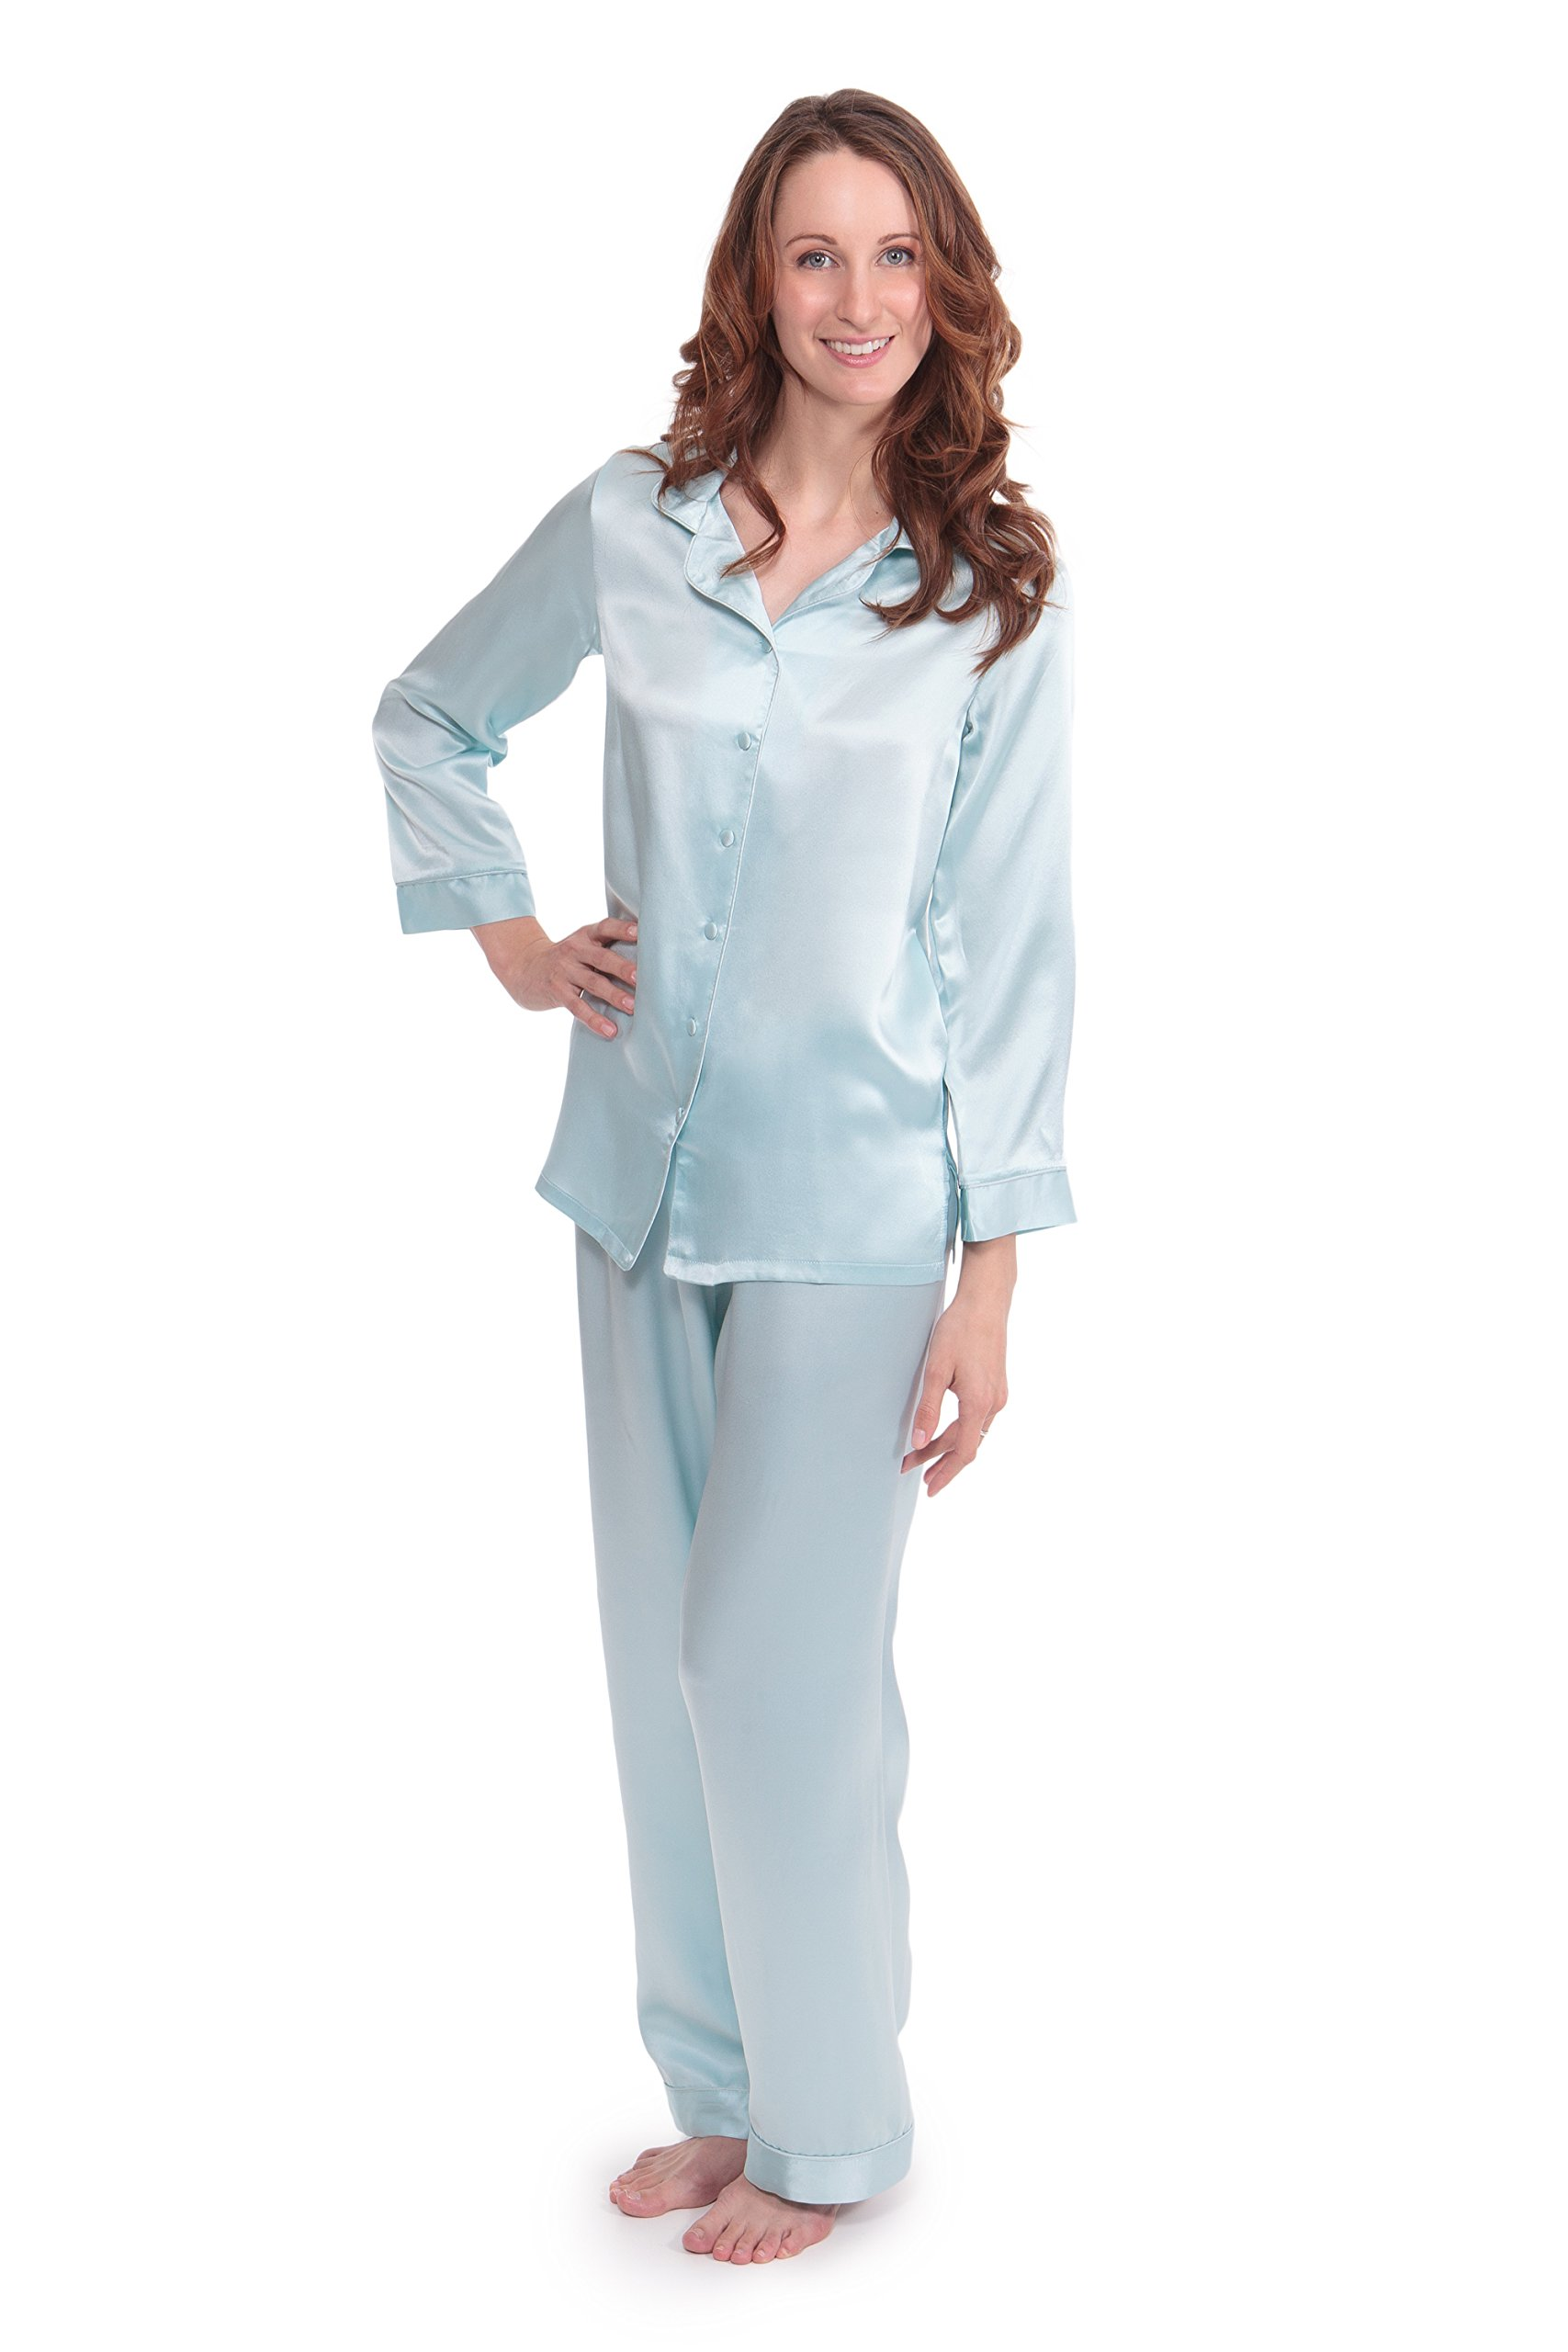 TexereSilk Women's Luxury Silk Pajama Set (Divine Blue, Large) Perfect Christmas Gifts for Wife Sister Daughter WS0001-DVB-L